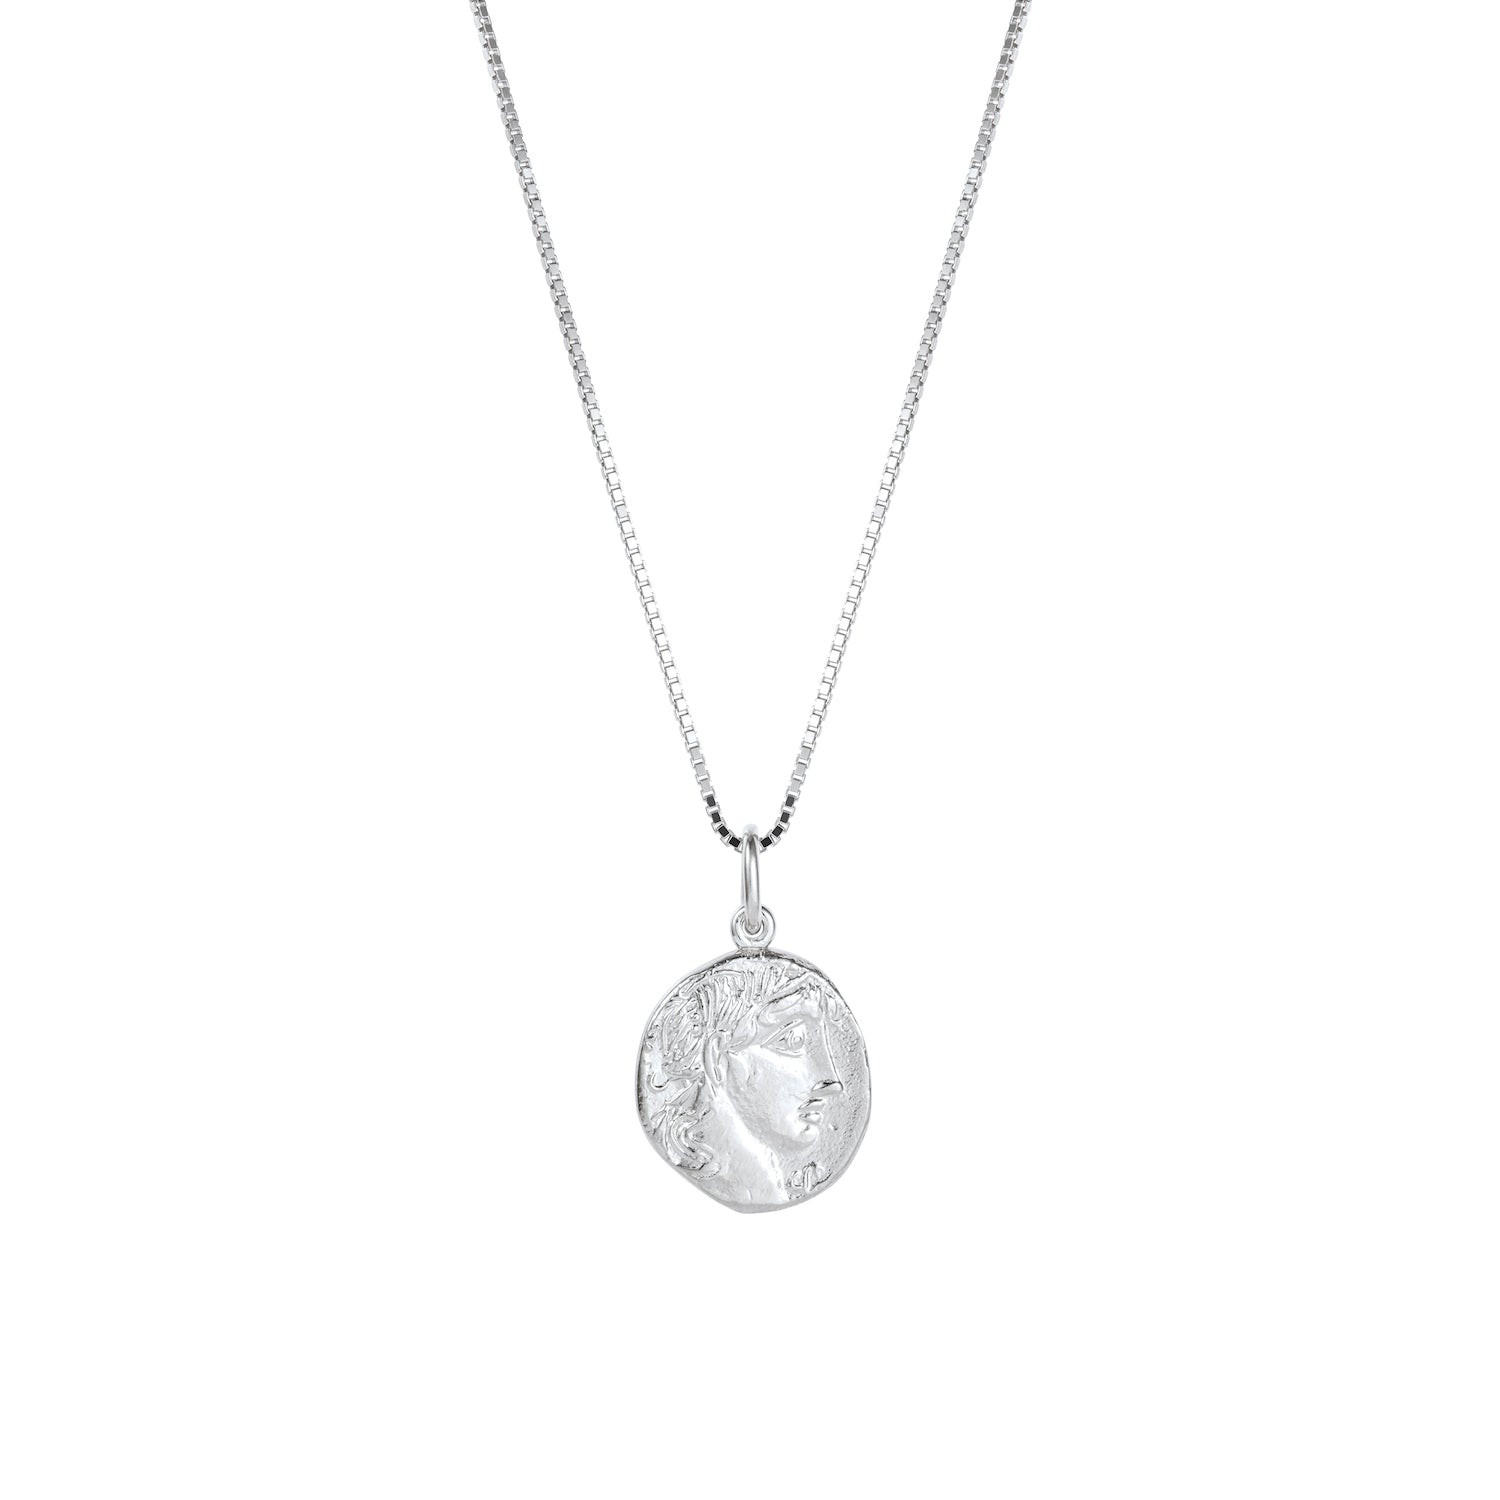 Apollo Coin Necklace Silver